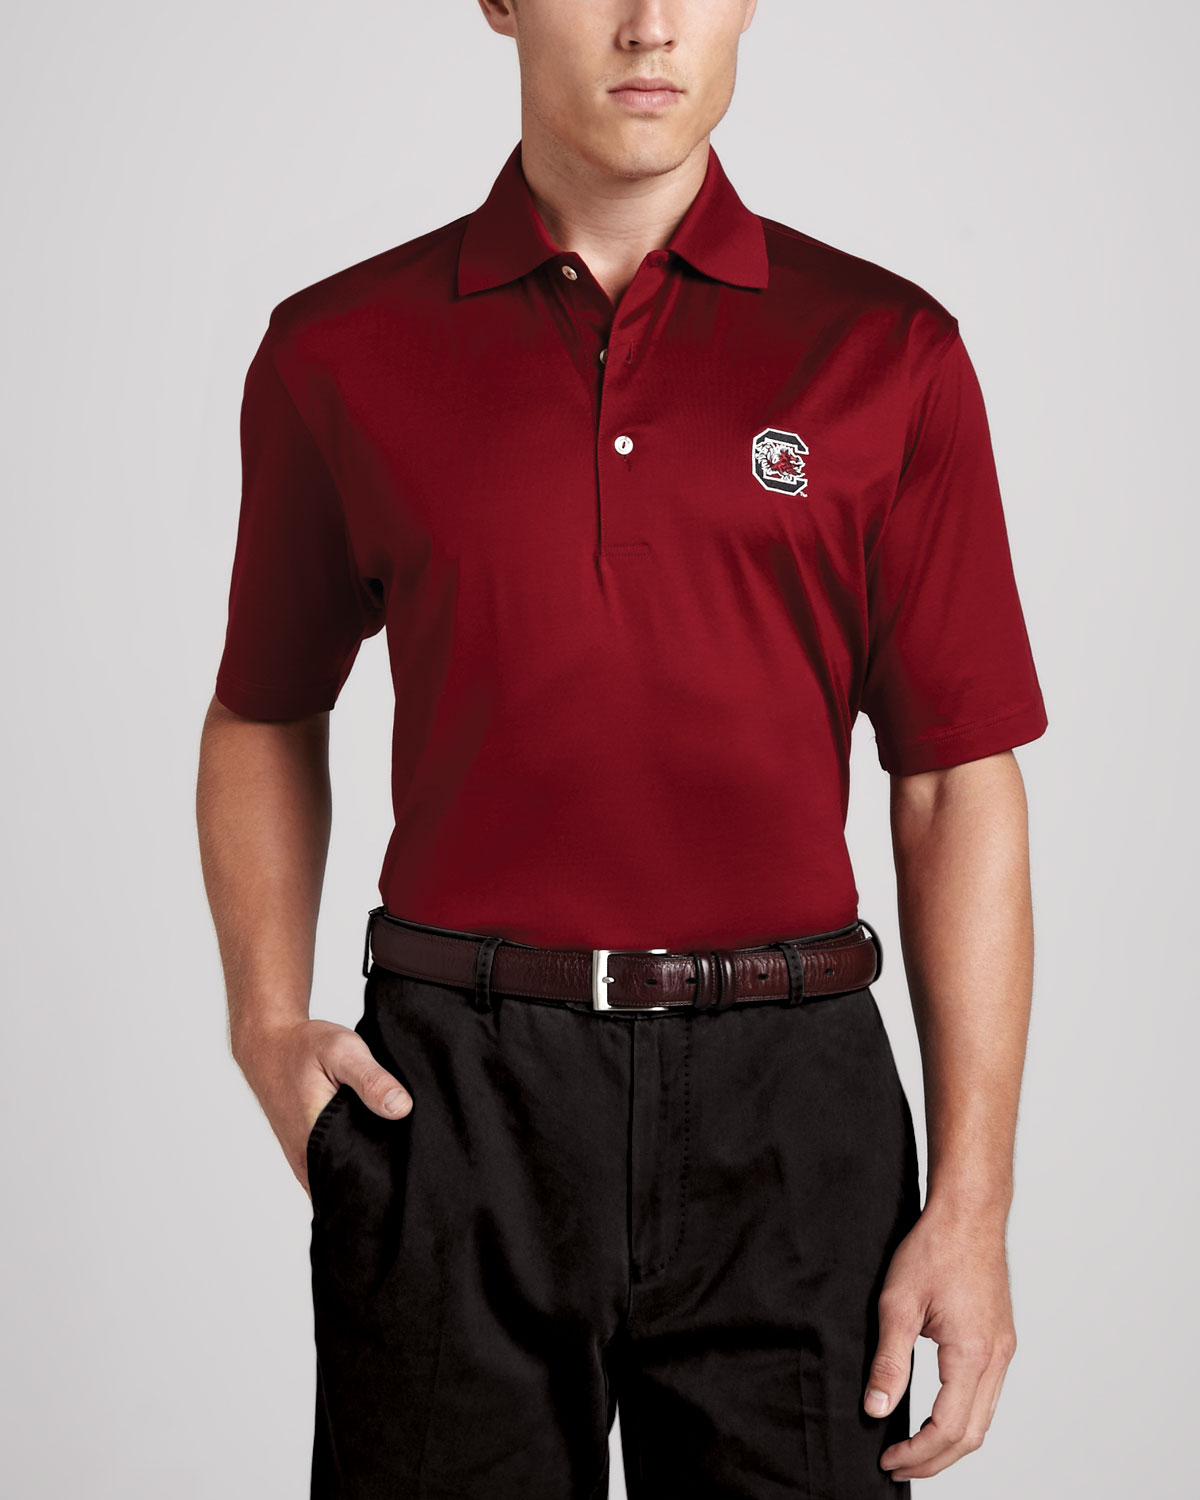 Mens South Carolina Gamecocks Gameday Polo College Shirt, Maroon   Peter